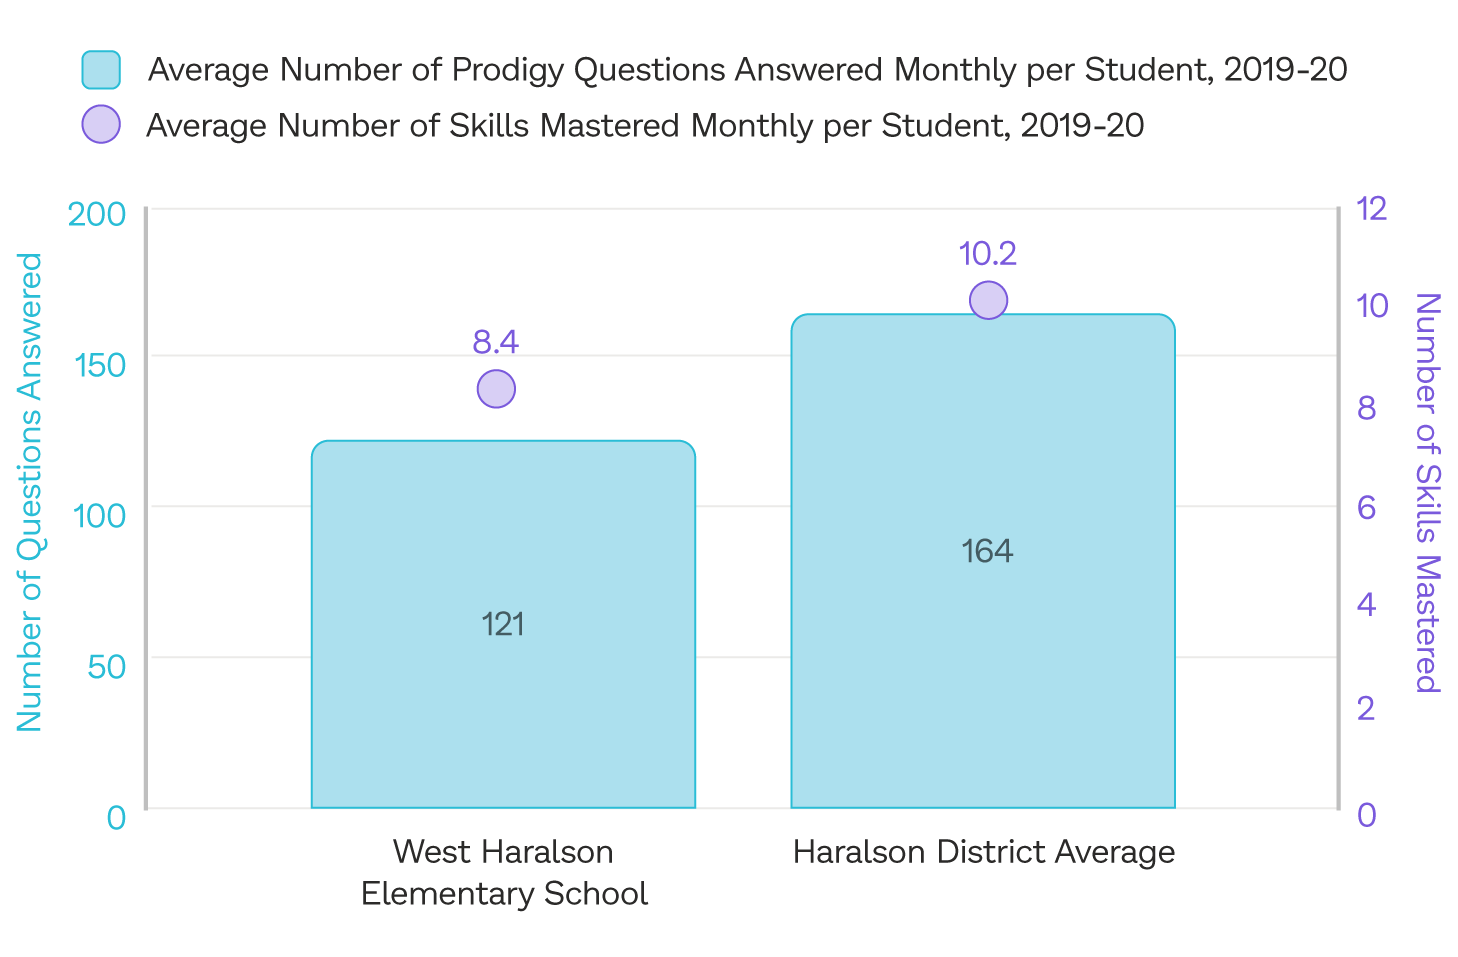 The average number of questions answered and math skills mastered by students in Haralson County School District who play Prodigy, compared to West Haralson Elementary in the 2019 to 2020 school year.